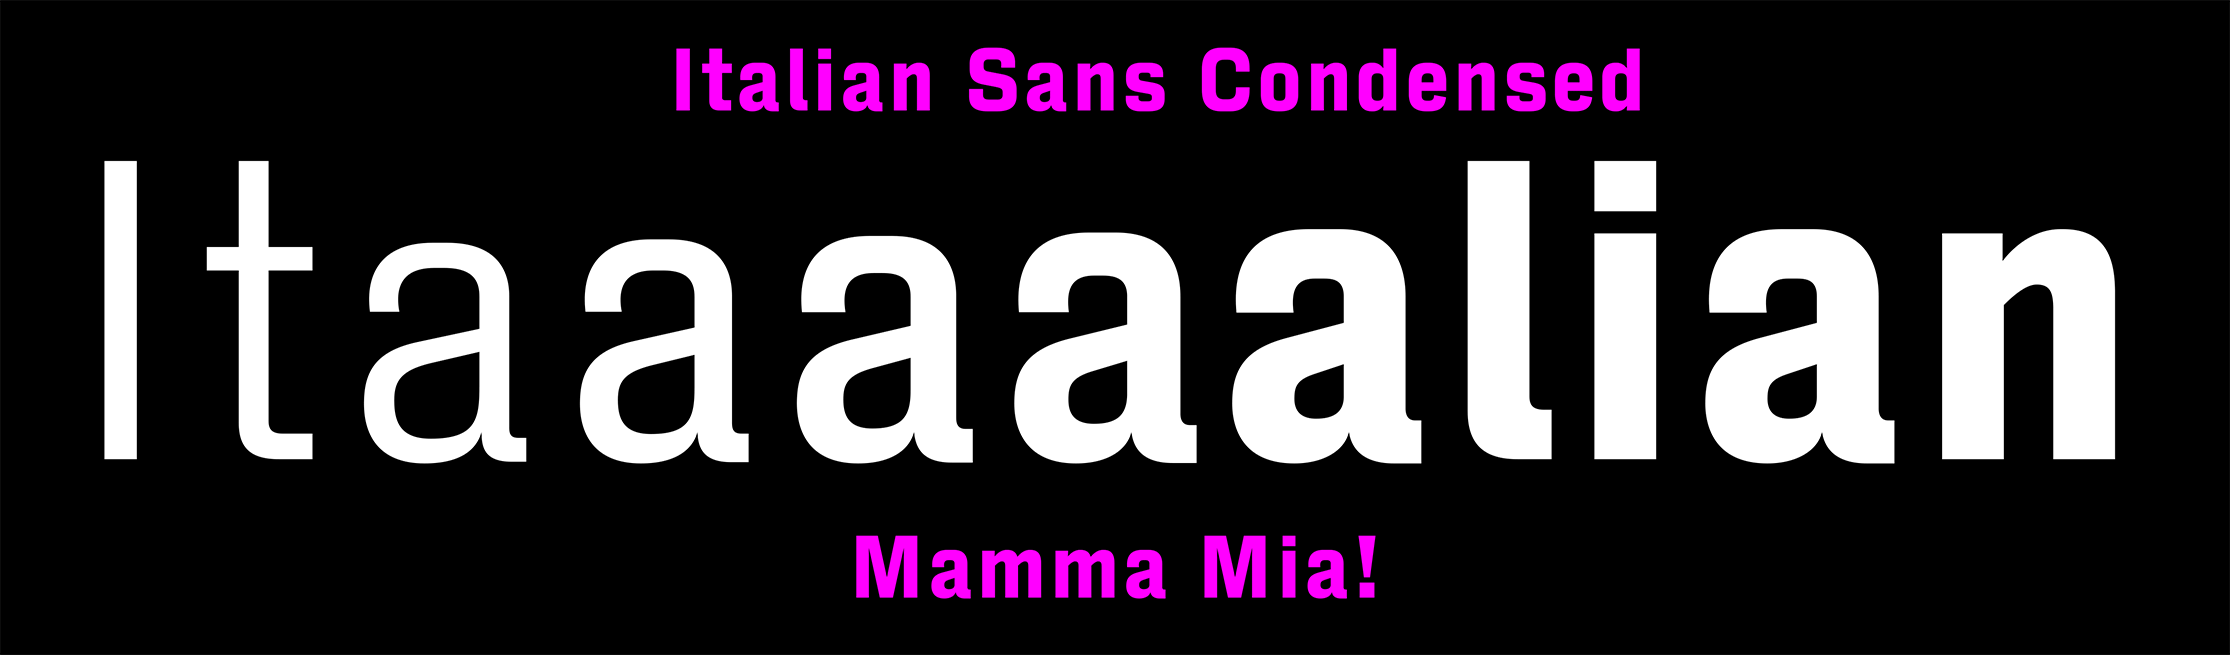 Italian Sans Condensed sample